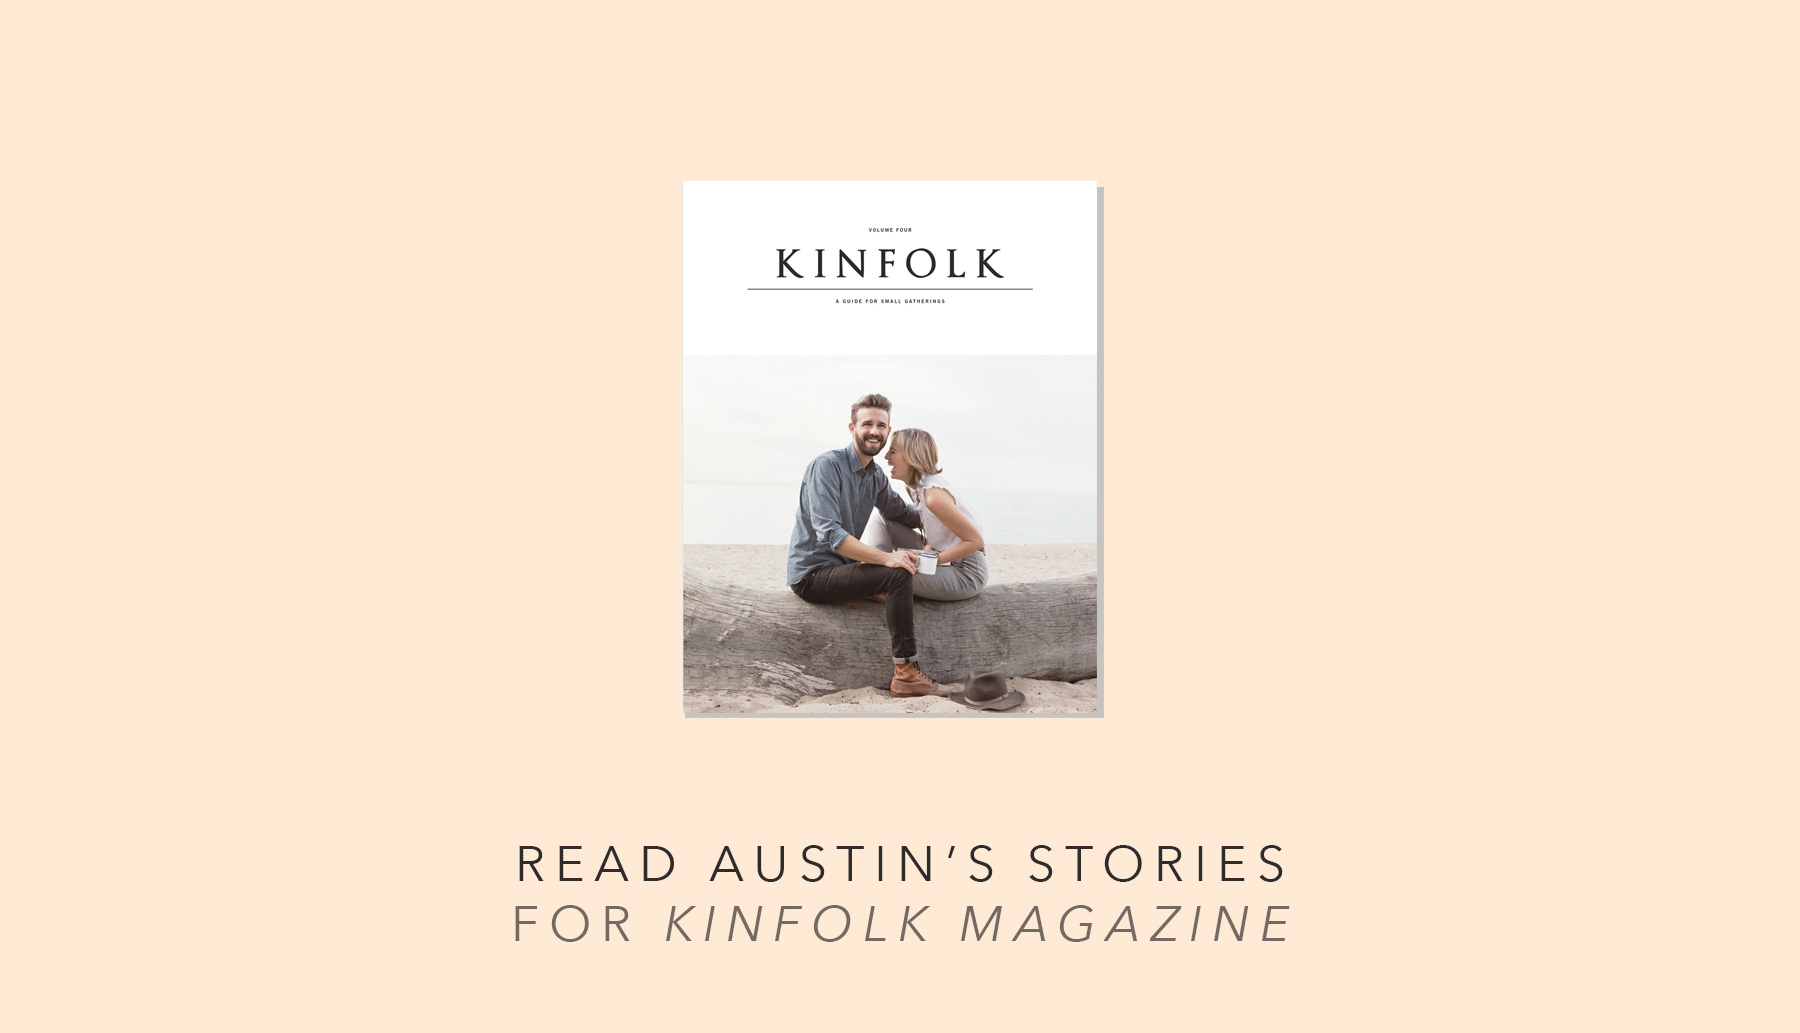 KINFOLK-FOR-HEADER.jpg